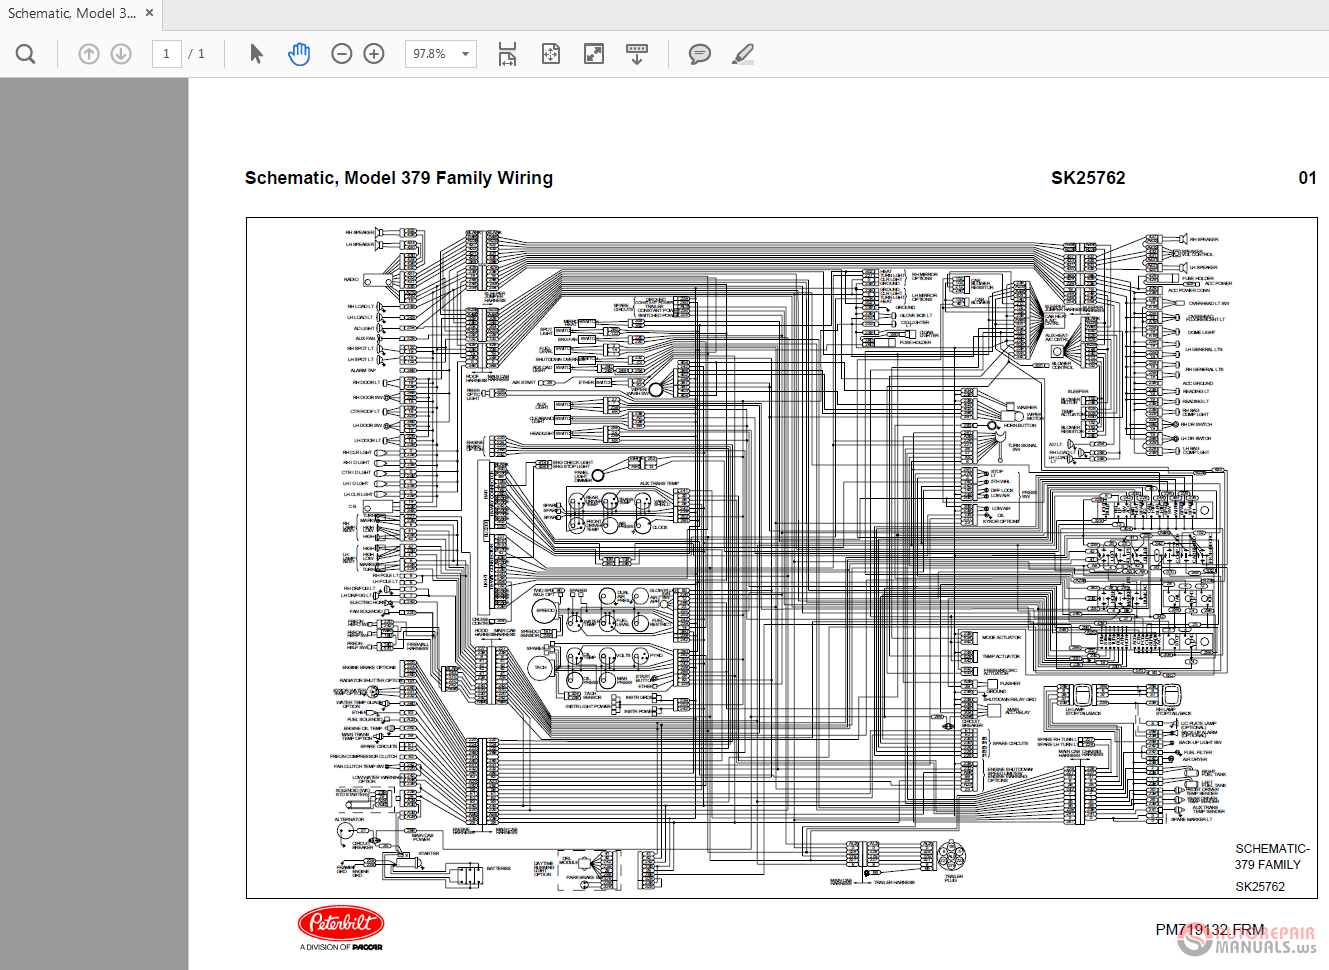 ☑ 2004 Peterbilt Wiring Diagram HD Quality ☑ phase-diagrams.twirlinglucca.itDiagram Database - Twirlinglucca.it